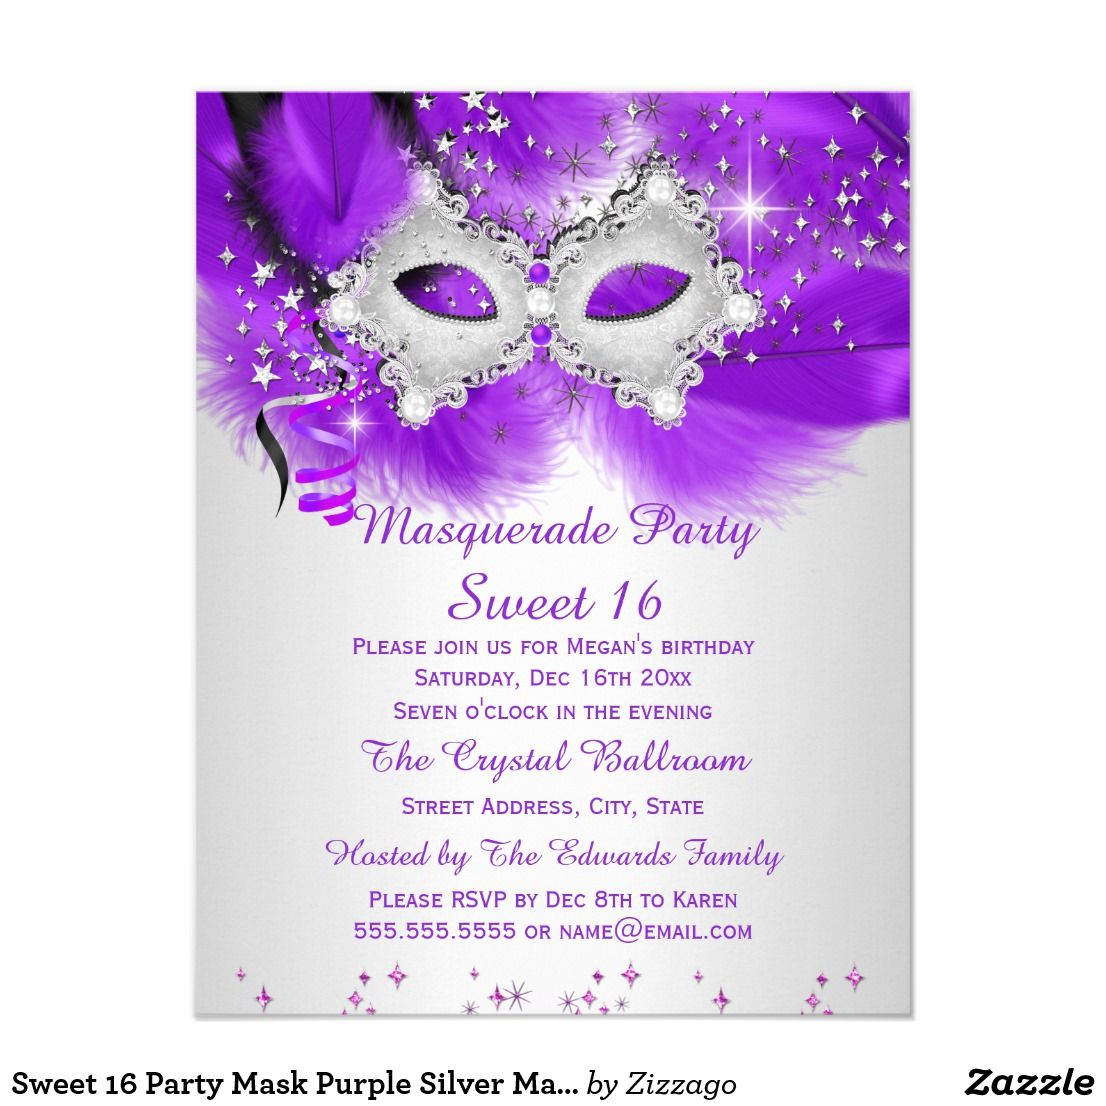 Sweet 16 Party Mask Purple Silver Masquerade Card   Sweet 16 ...